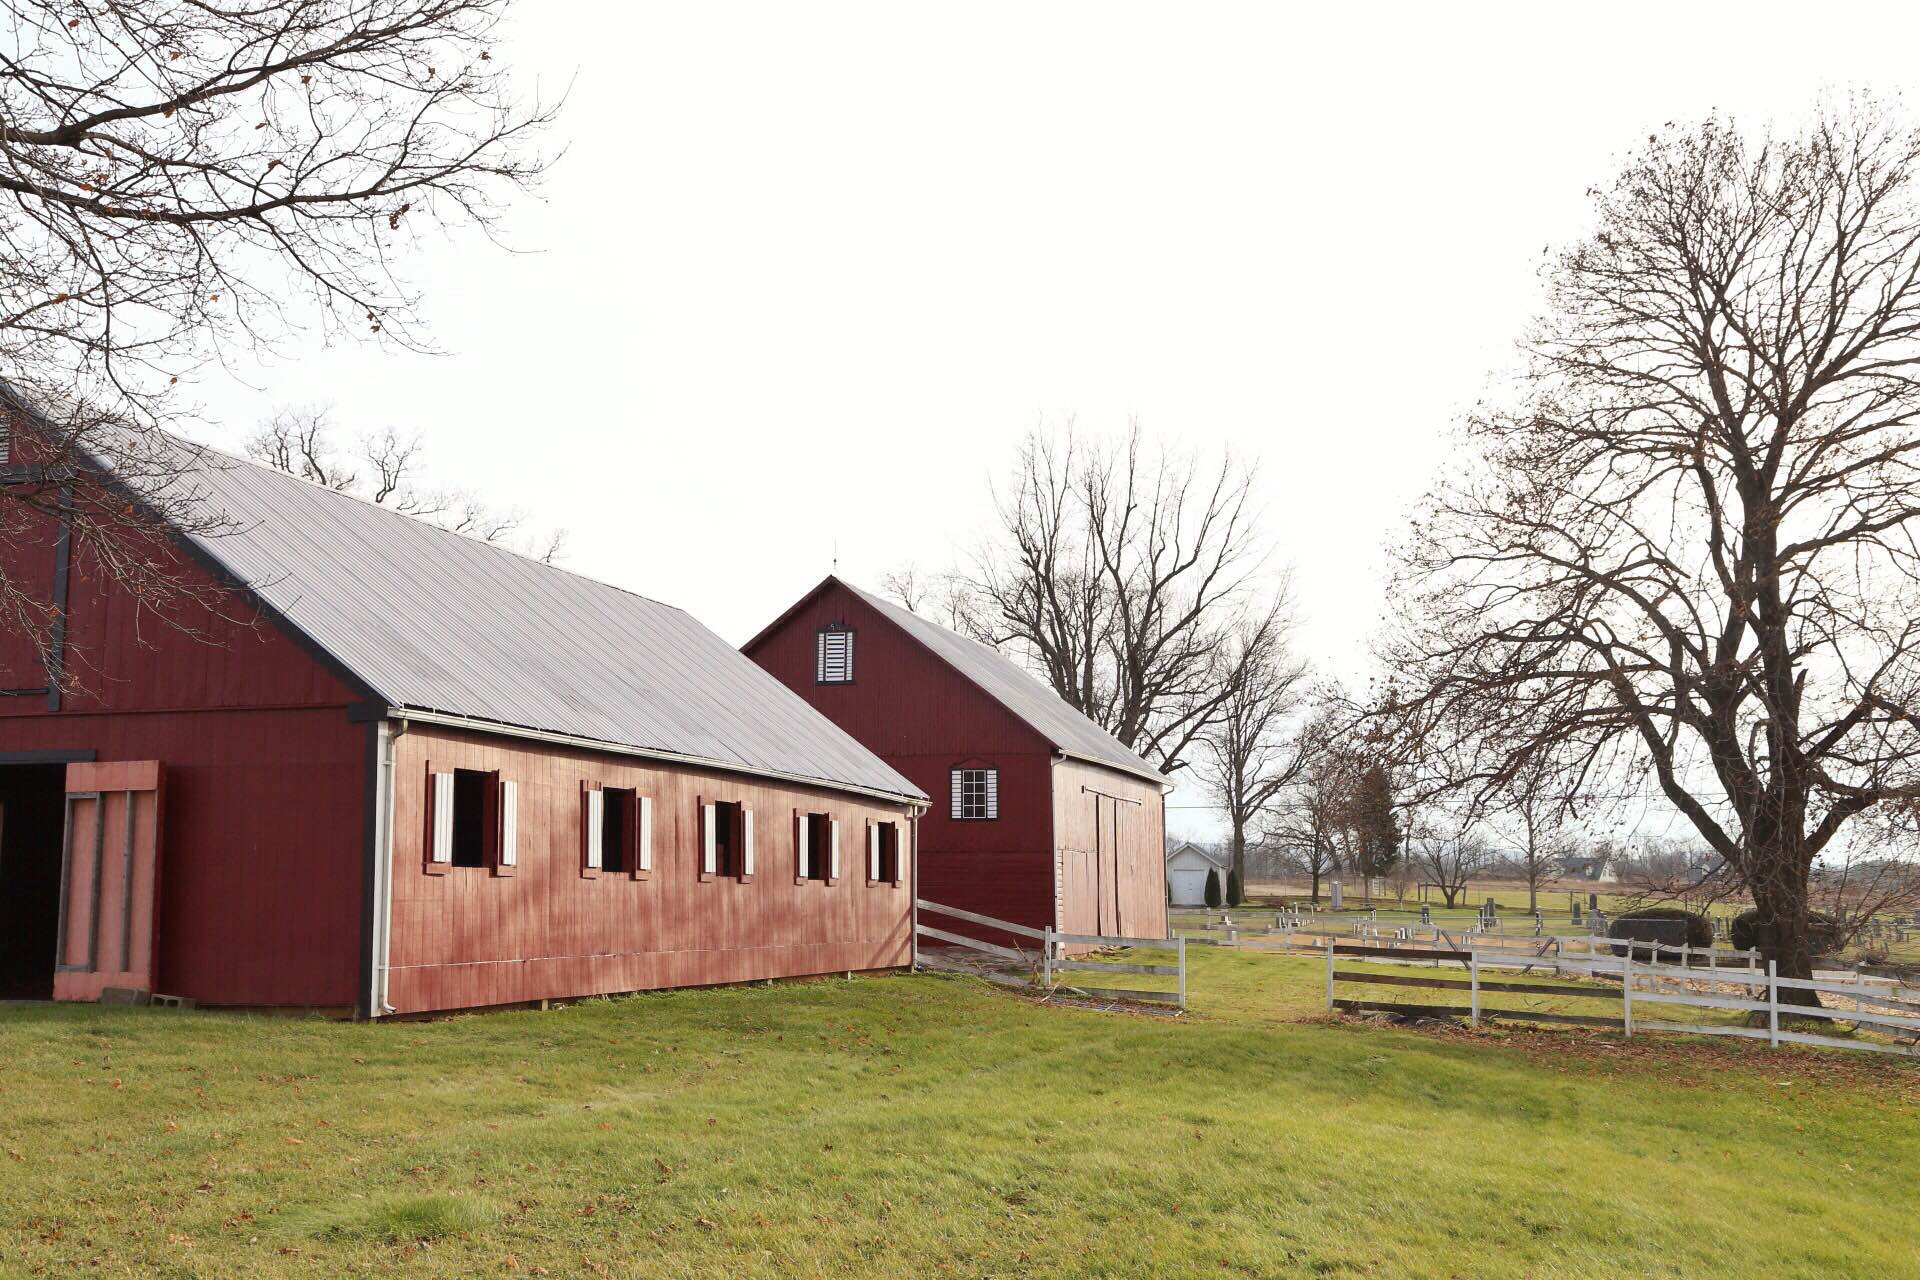 A view of the barns.